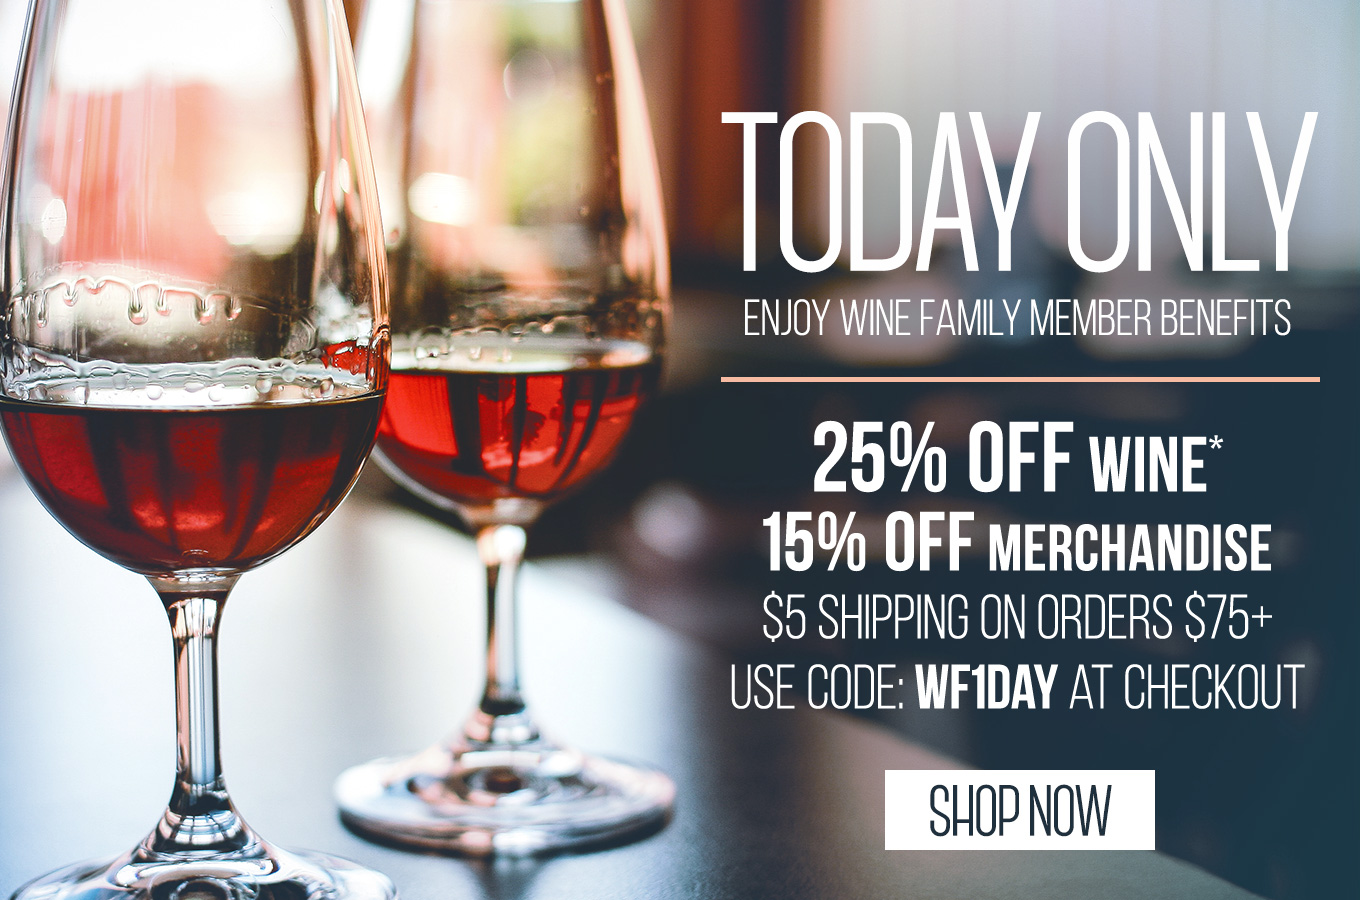 Today Only Enjoy Wine Family Member Benefits 25% OFF Wine & 15% OFF Merchandise* $5 Shipping On Orders of $75+ | Use Code: WF1DAY At Checkout